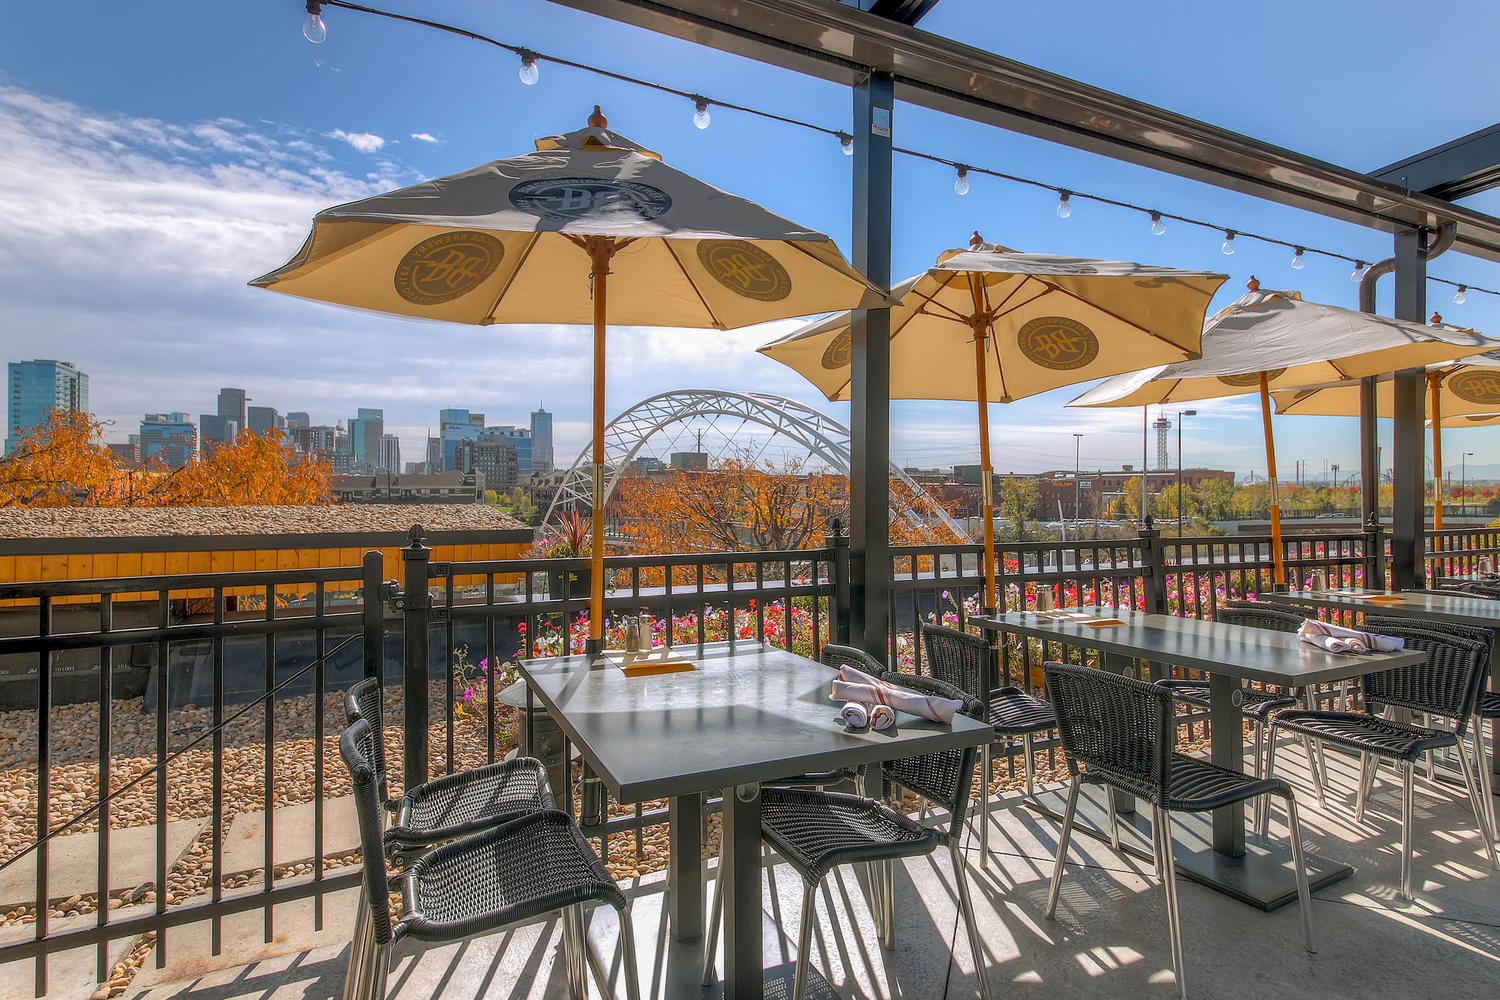 Rooftop event space at Ale House at Amato's in denver